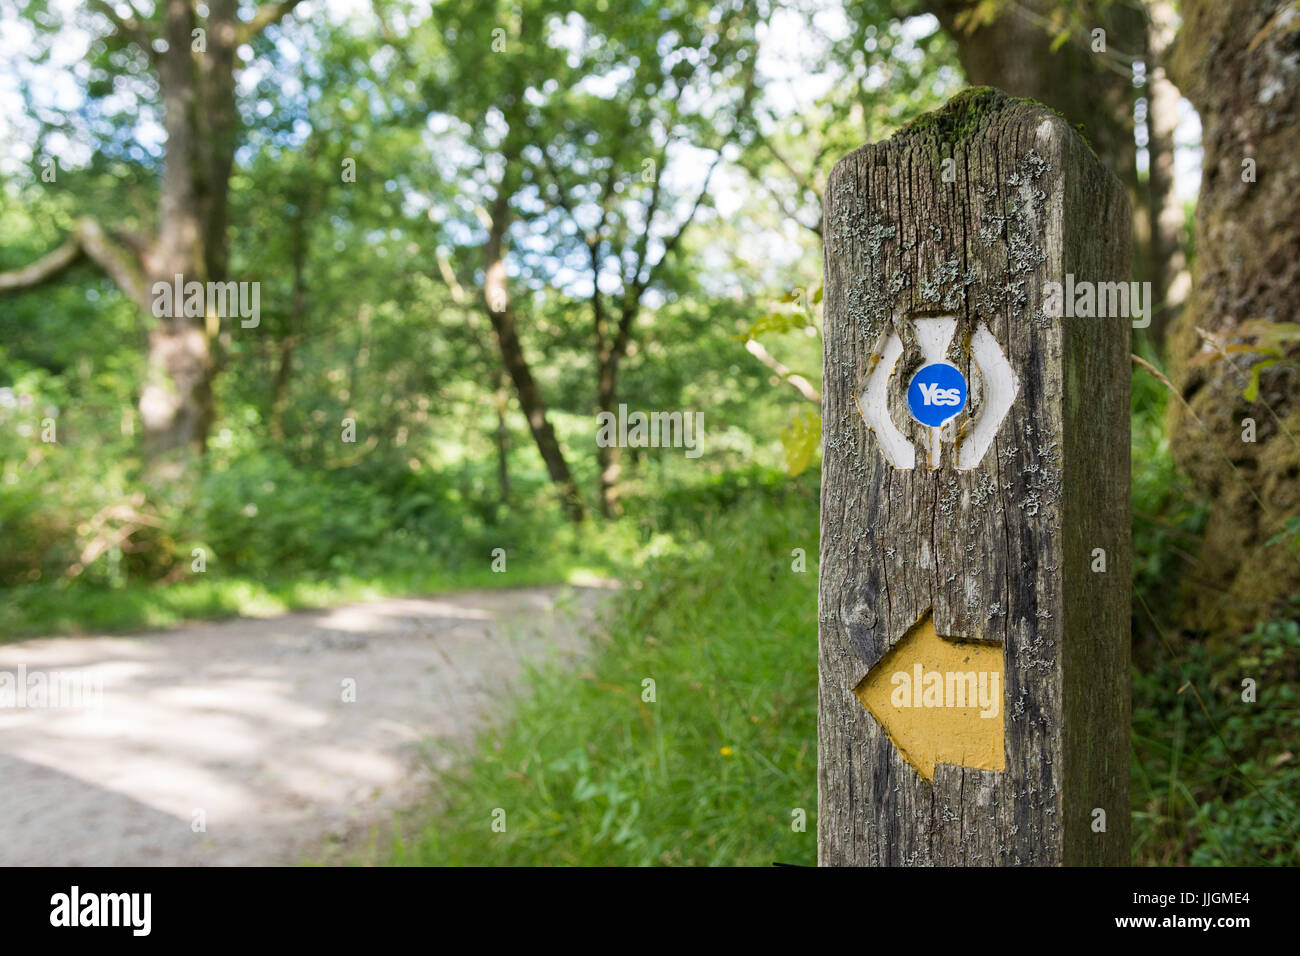 Scottish Independence Referendum - concept - yes sticker on West Highland Way long distance route marker - Stock Image